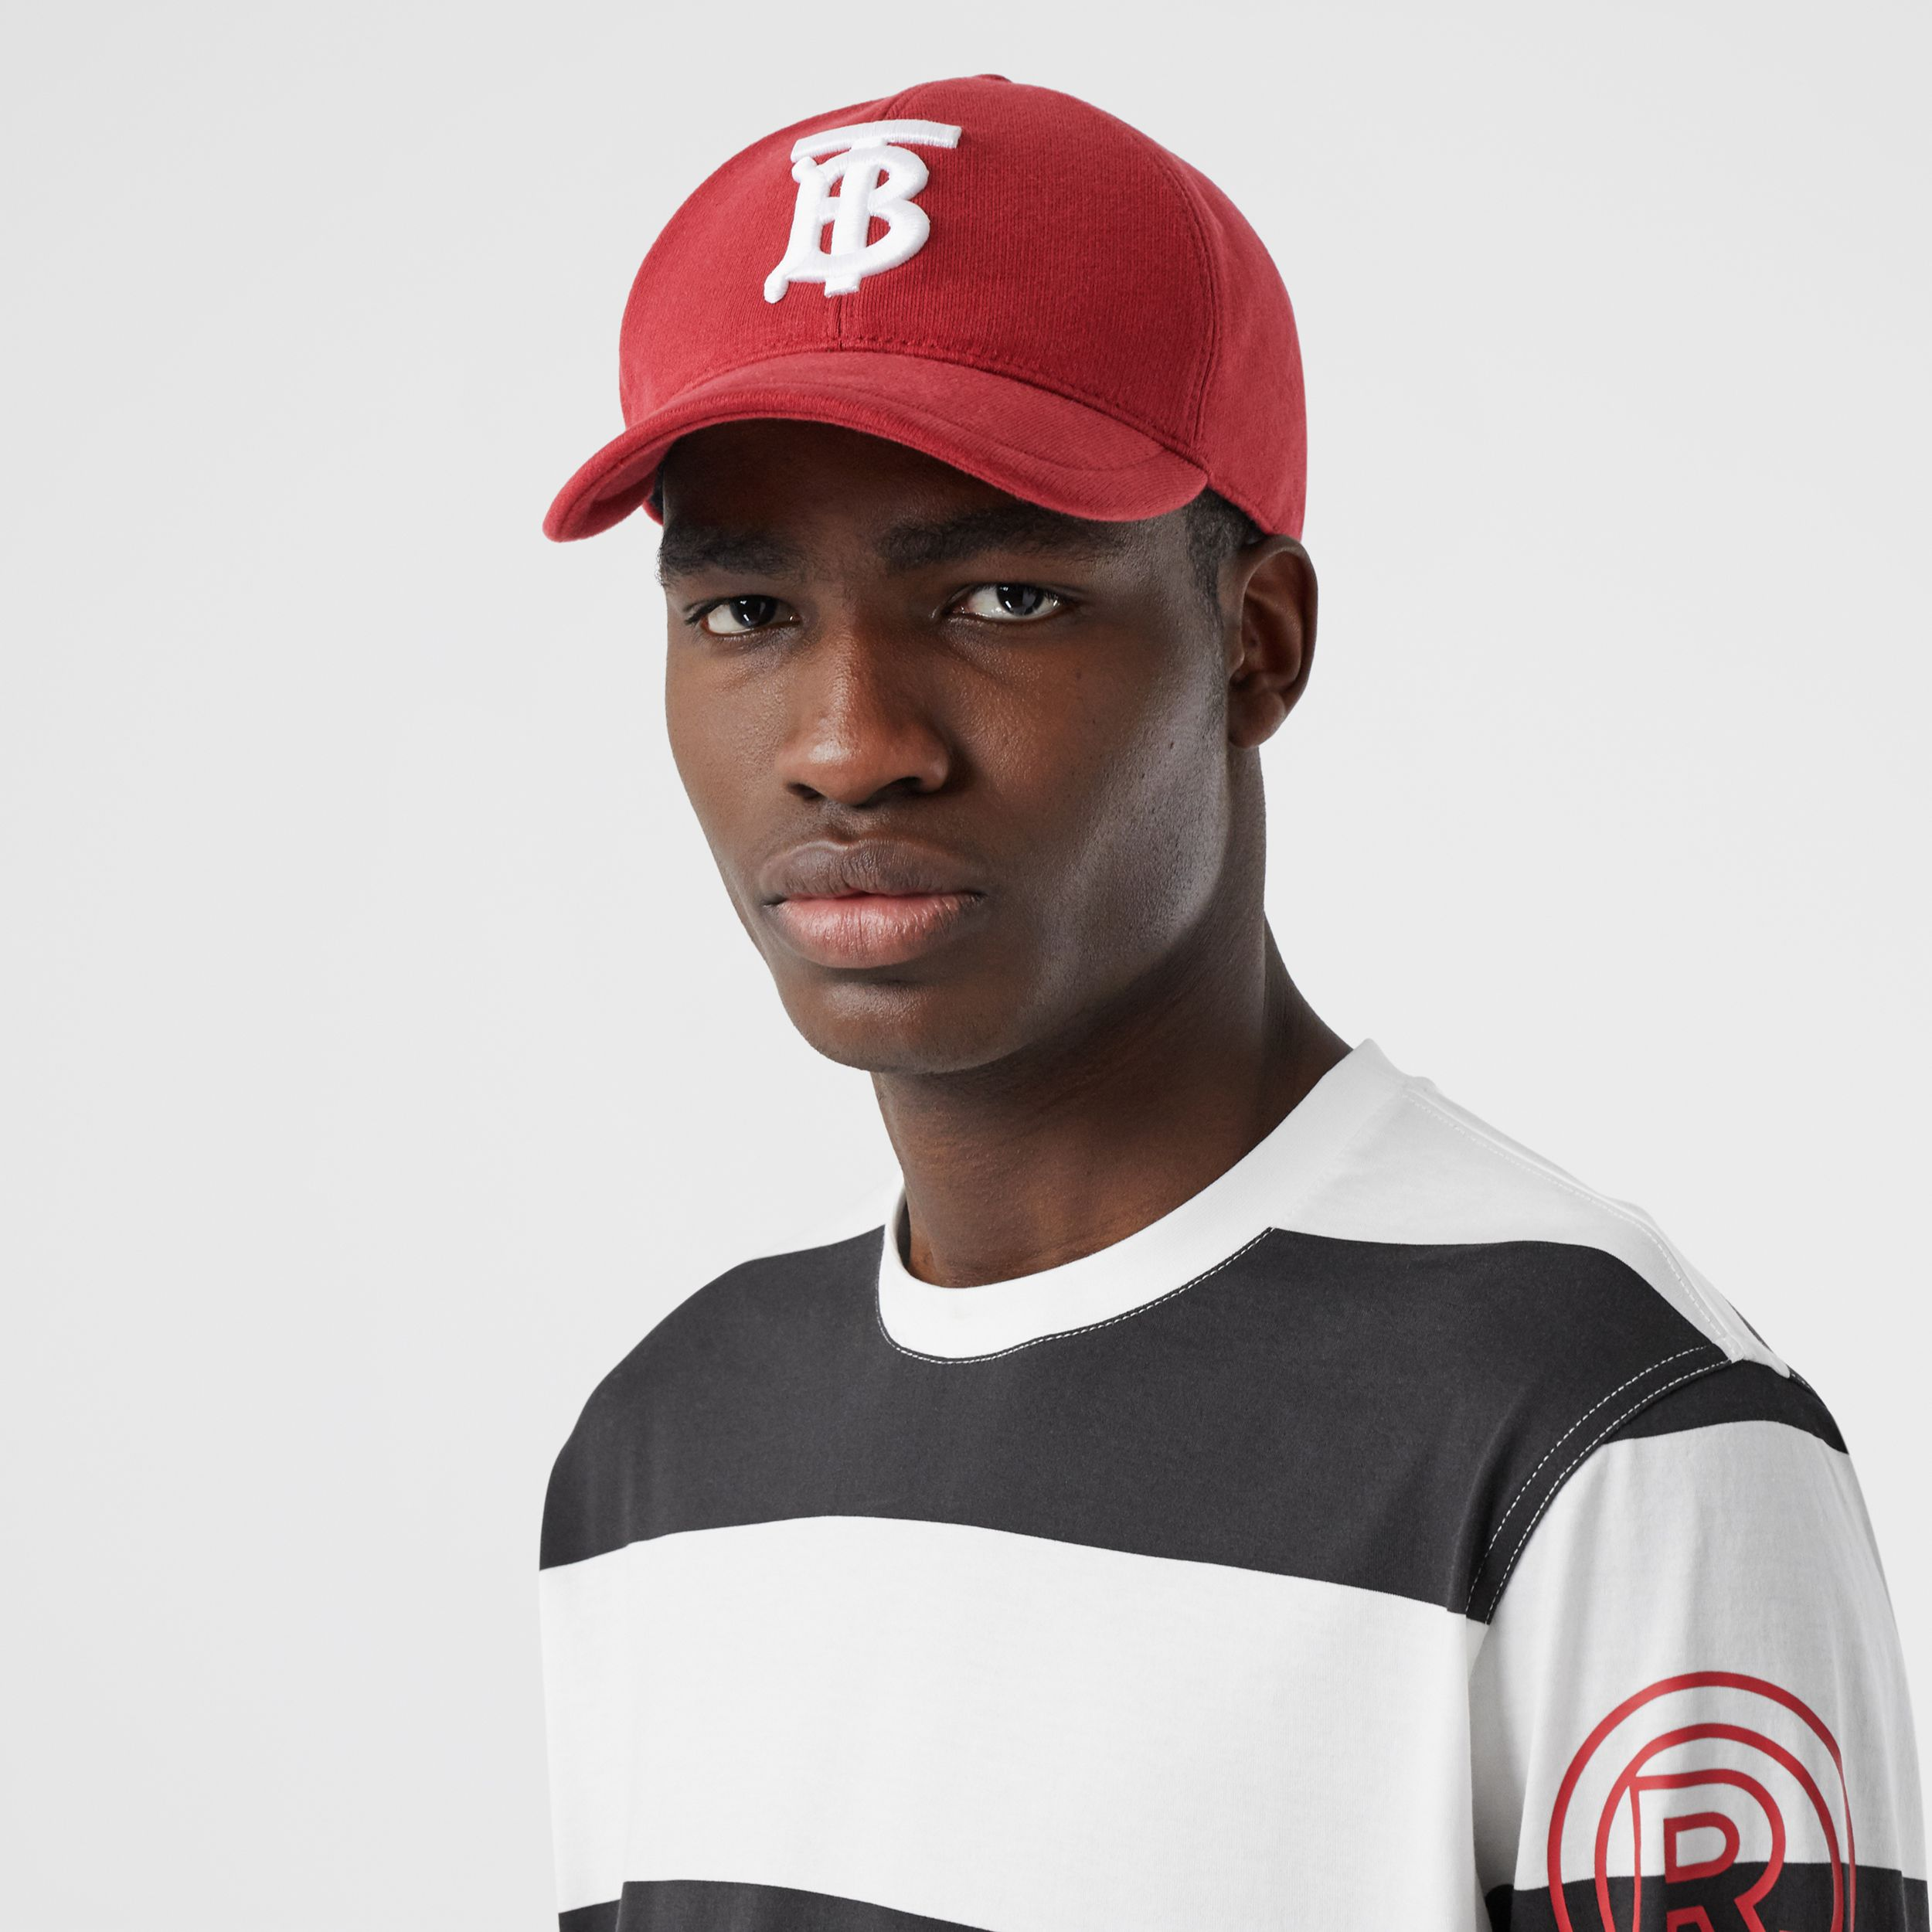 Monogram Motif Jersey Baseball Cap in Dark Carmine | Burberry - 4